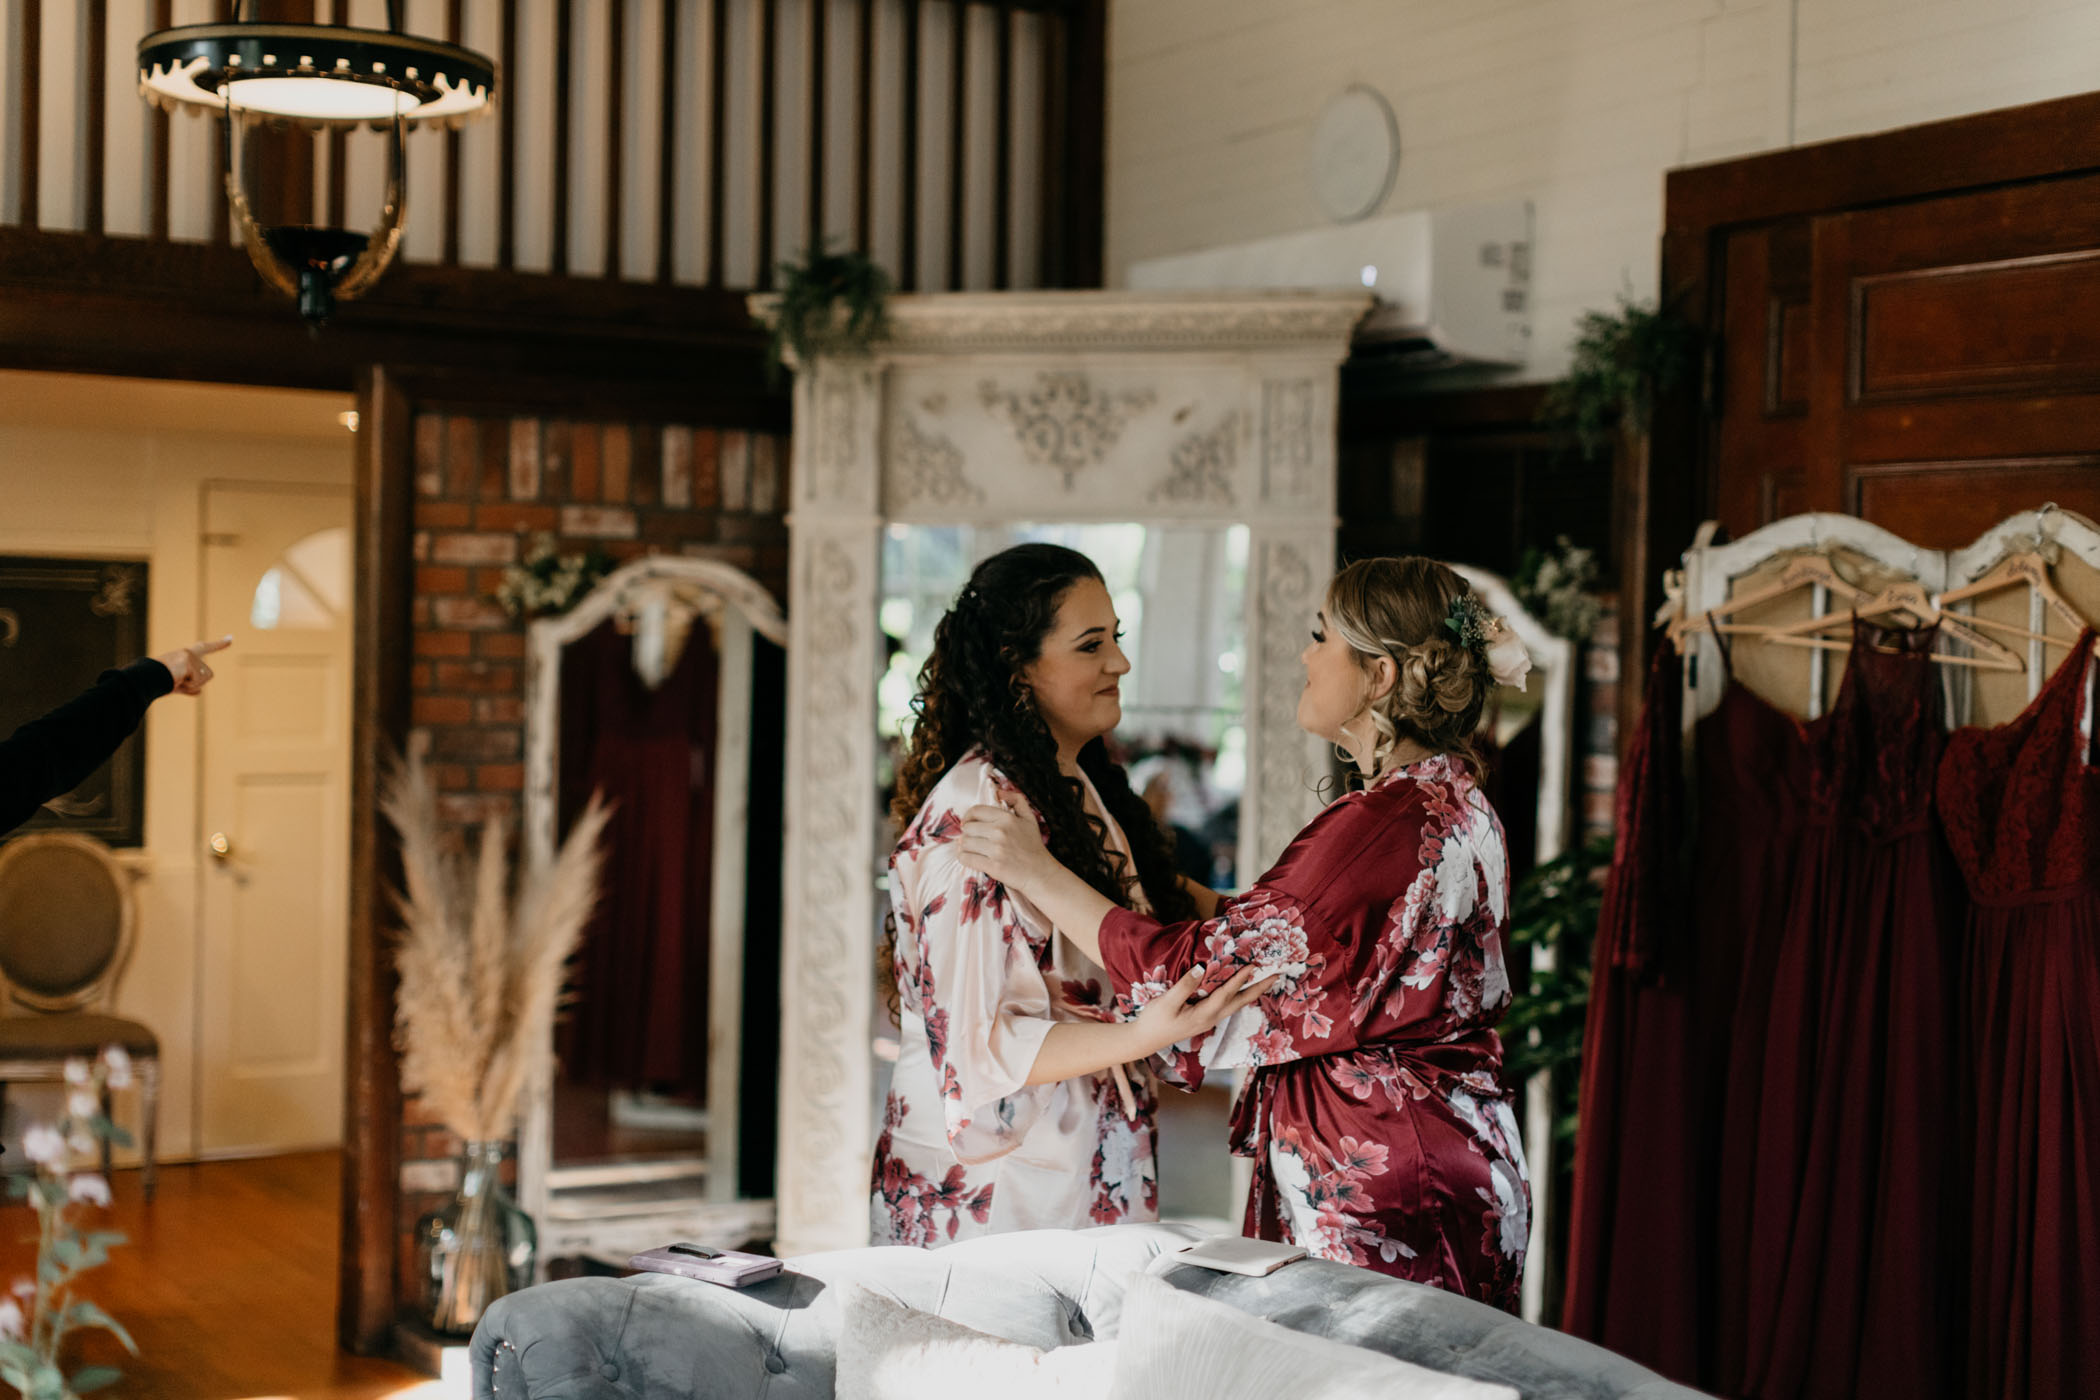 Bride getting ready in bridal room with bridesmaid